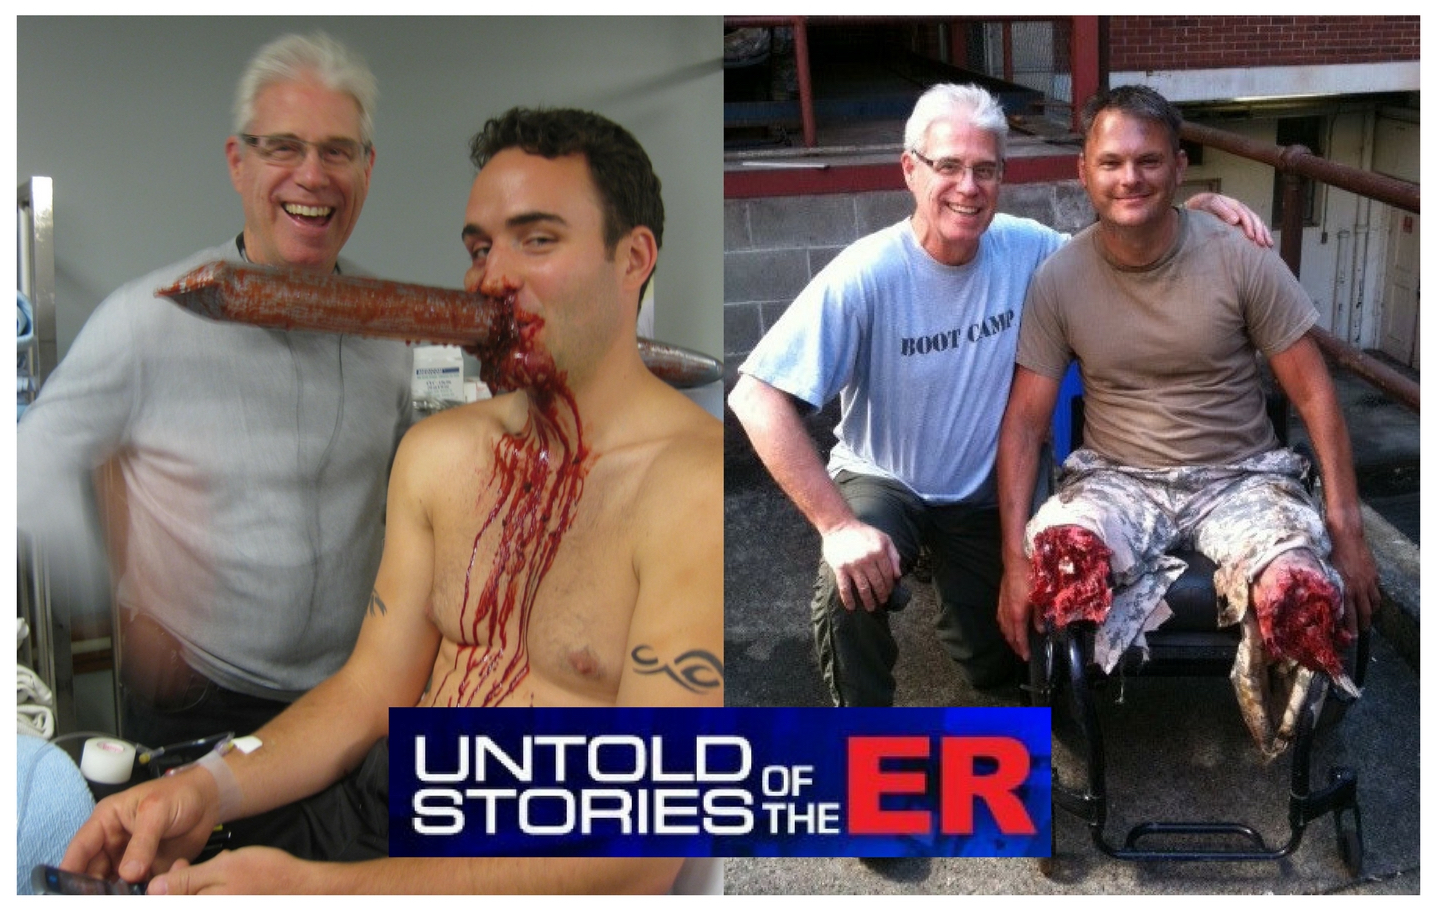 """Bob is now wrapping up his 8th season as executive producer of Discovery's """"Untold Stories of the ER"""" and I'm honored to have him as my guest on the 25th ..."""